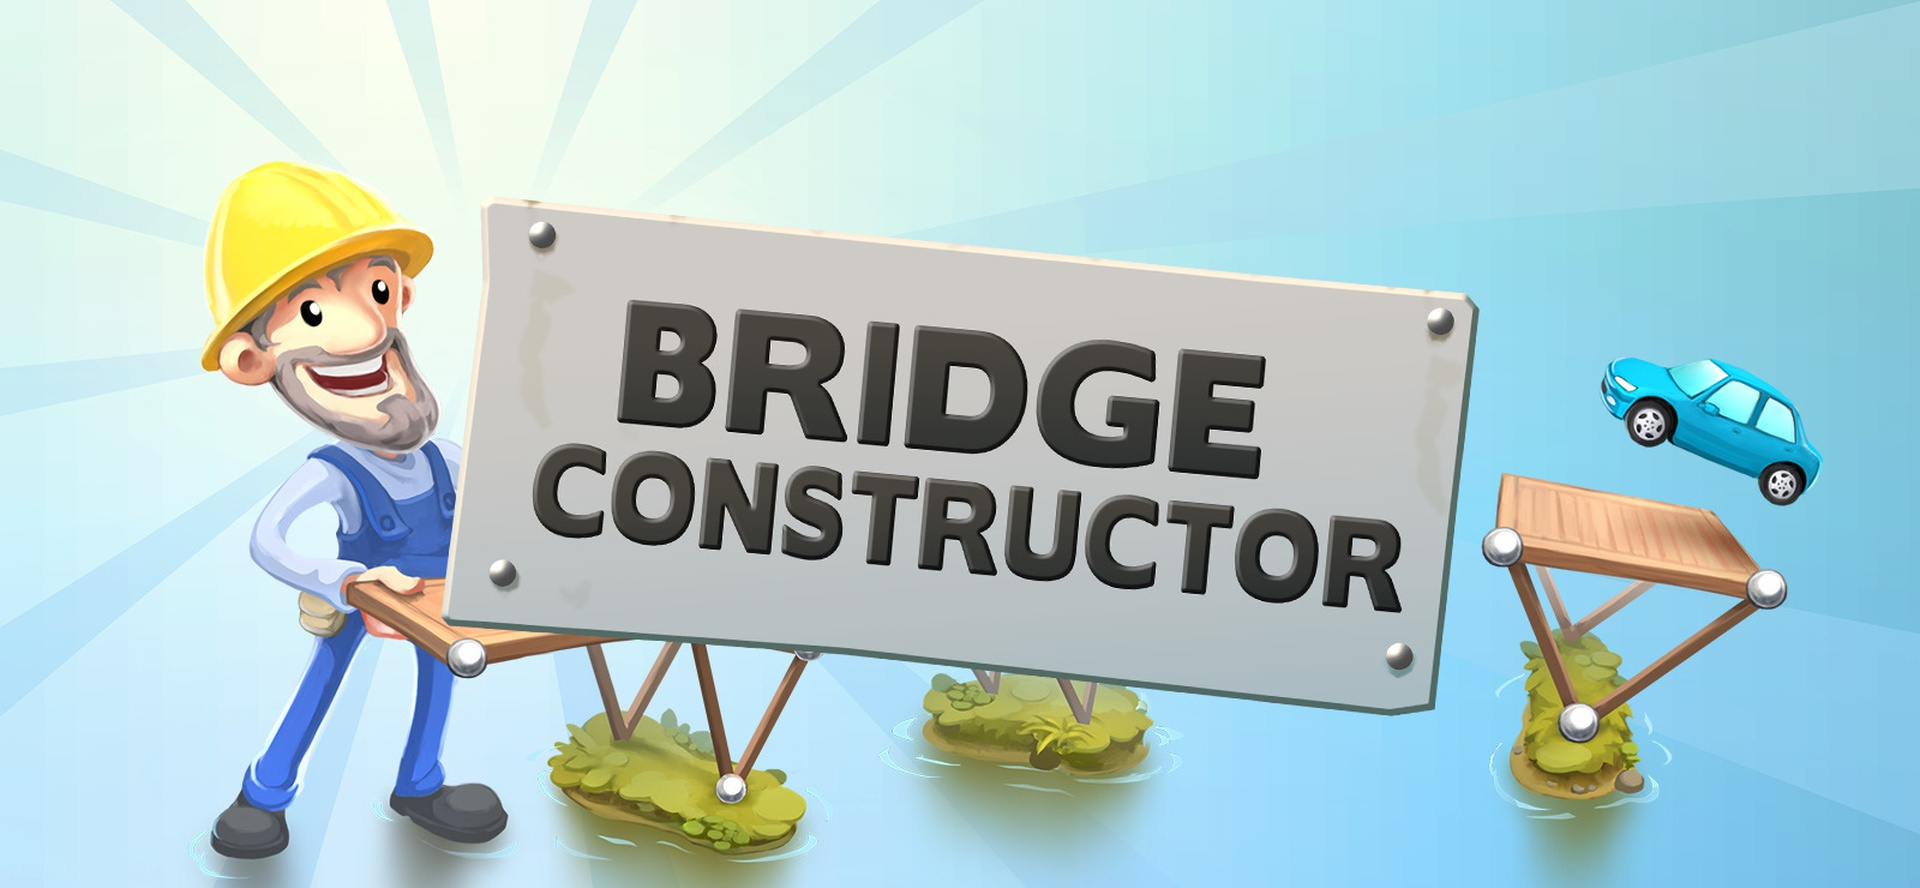 Bridge Constructor Video